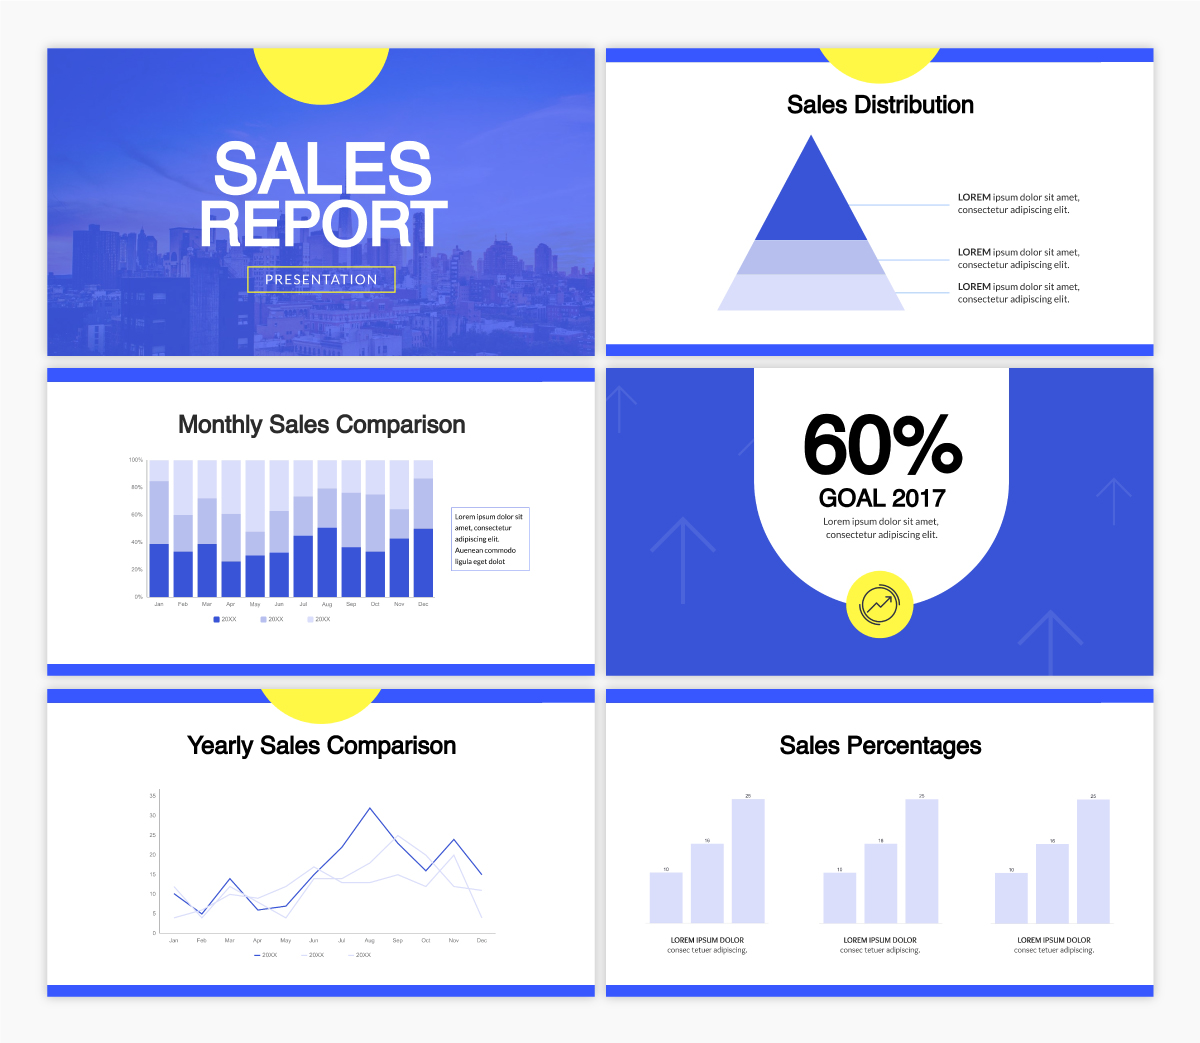 A sales report presentation template using the font Helvetica.